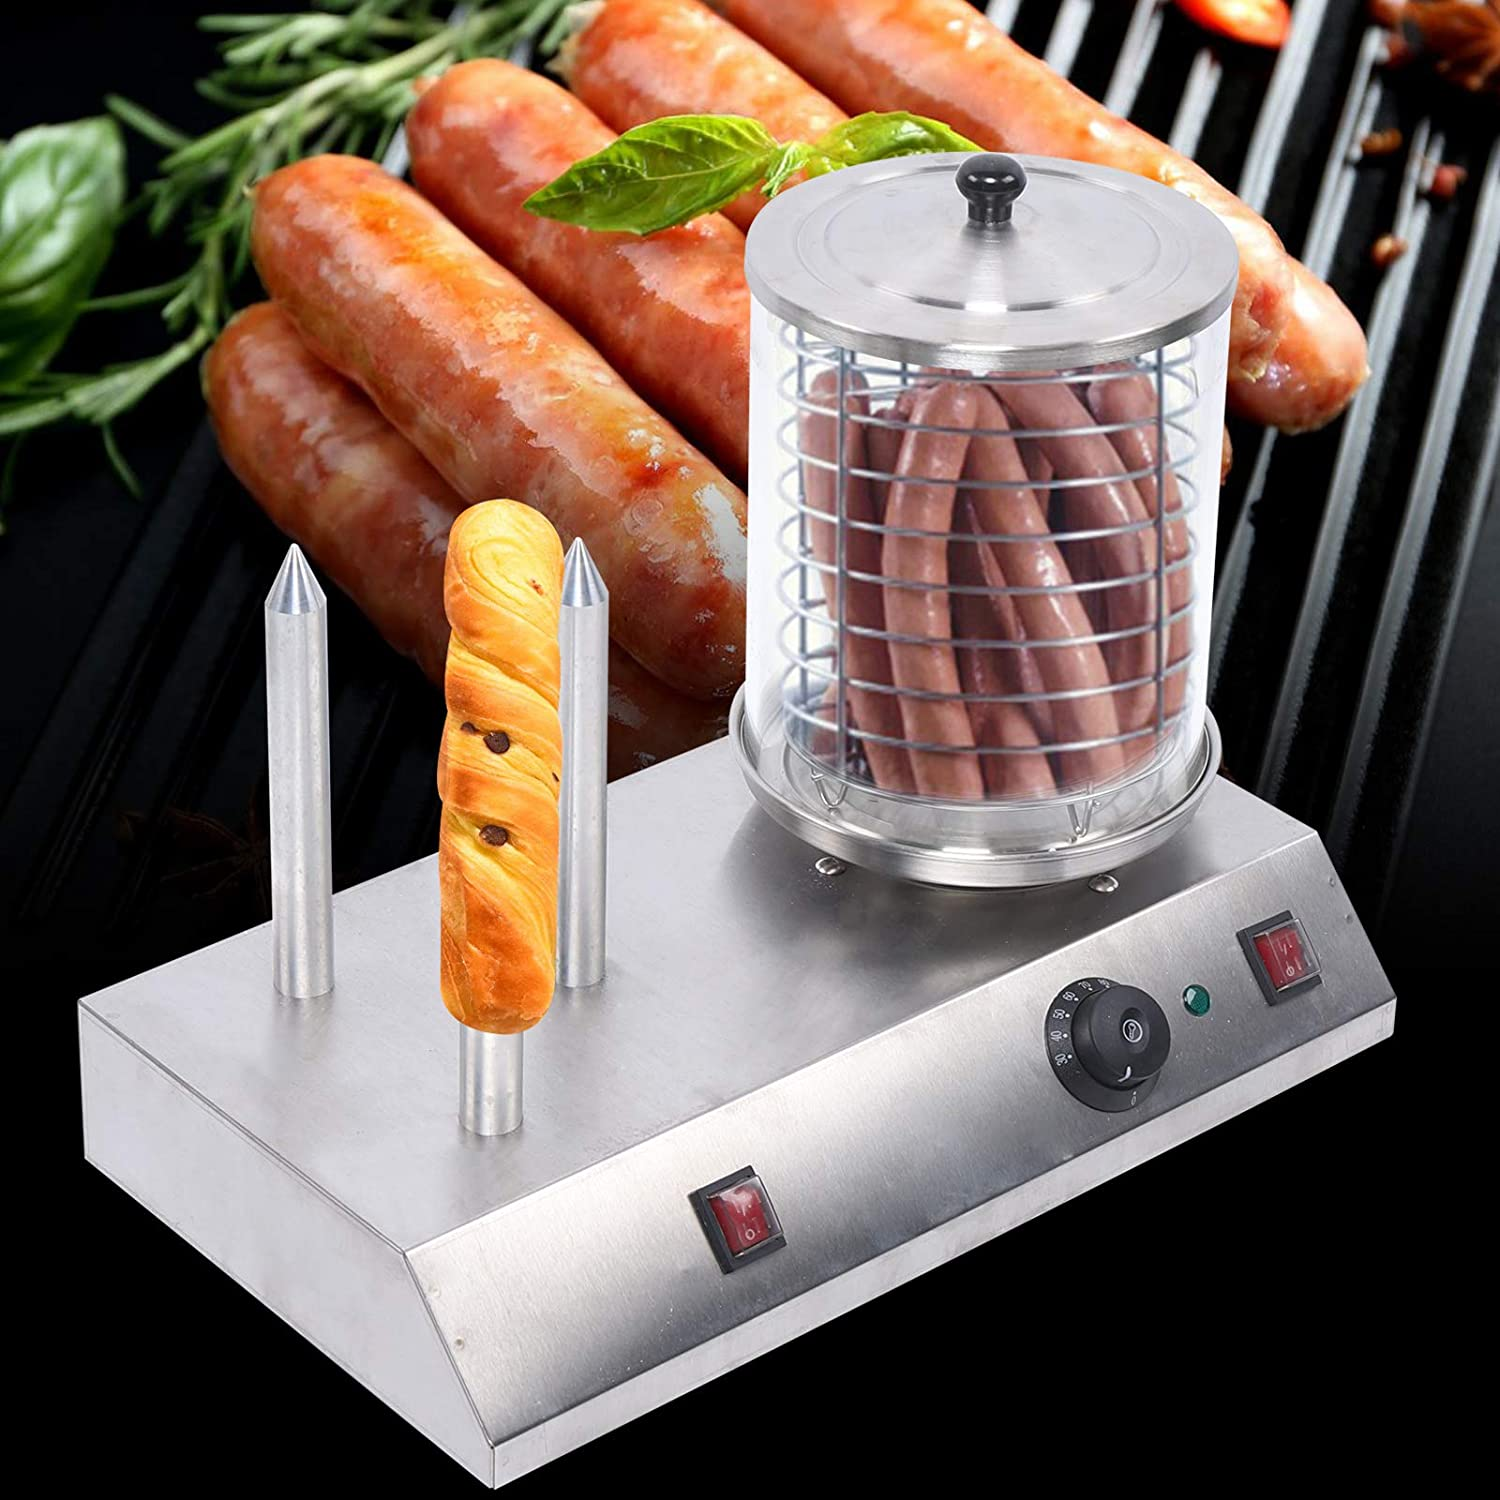 Hot Dog and Bun Toaster Brand new Buns NEW before selling ☆ Machine B Roller Cooker +